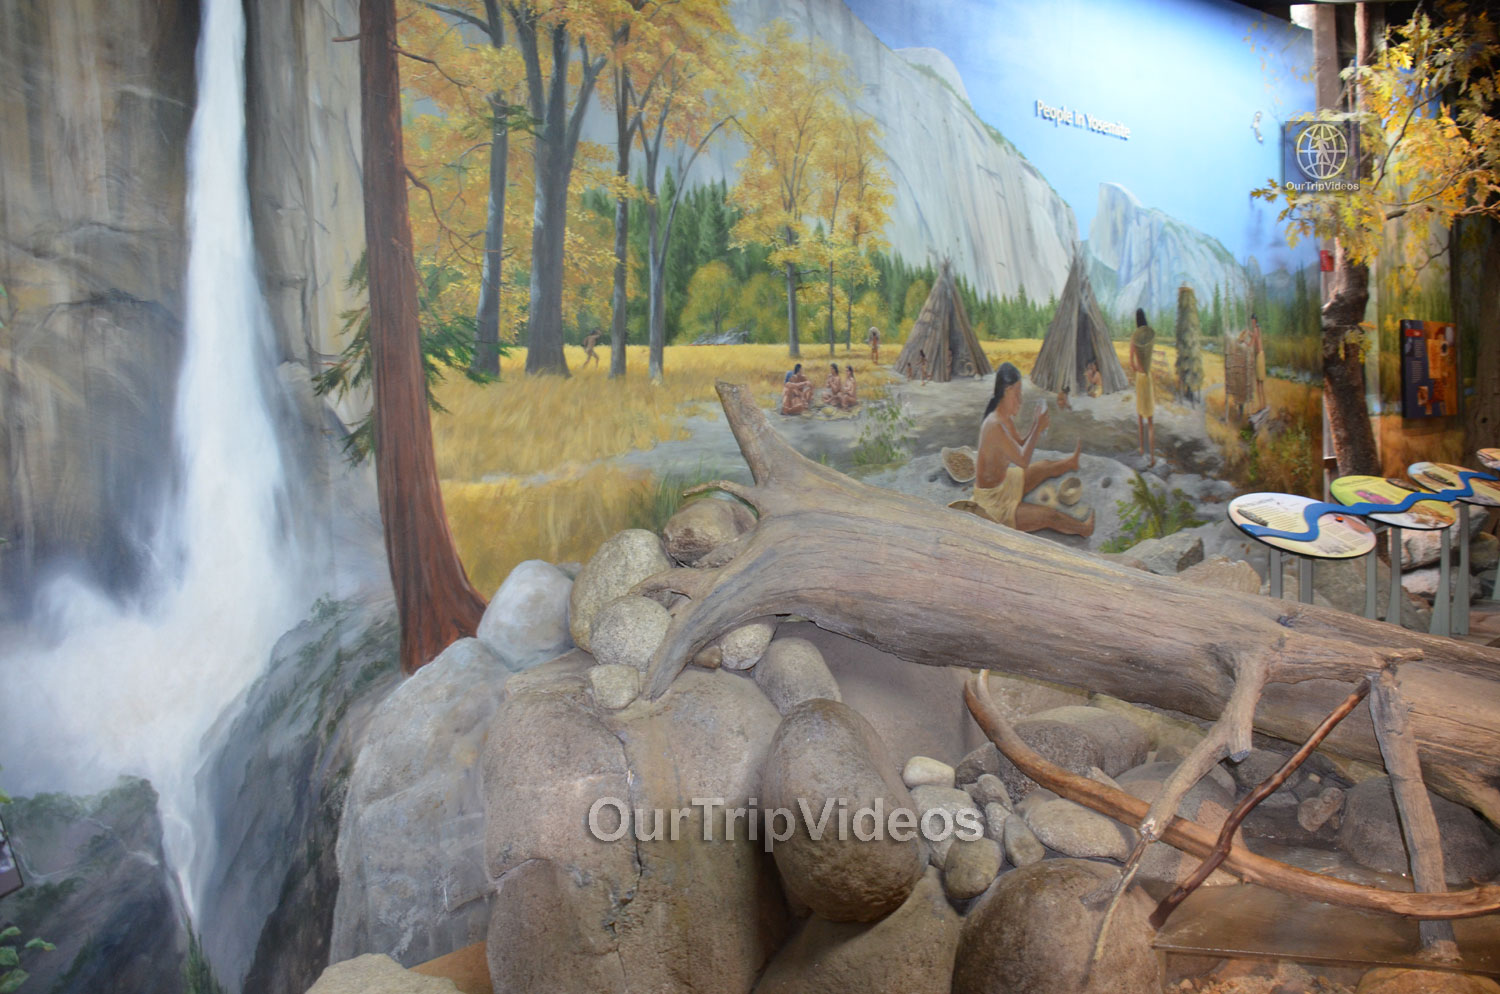 Yosemite National Park - Valley Visitor Center, Yosemite Valley, CA, USA - Picture 20 of 25